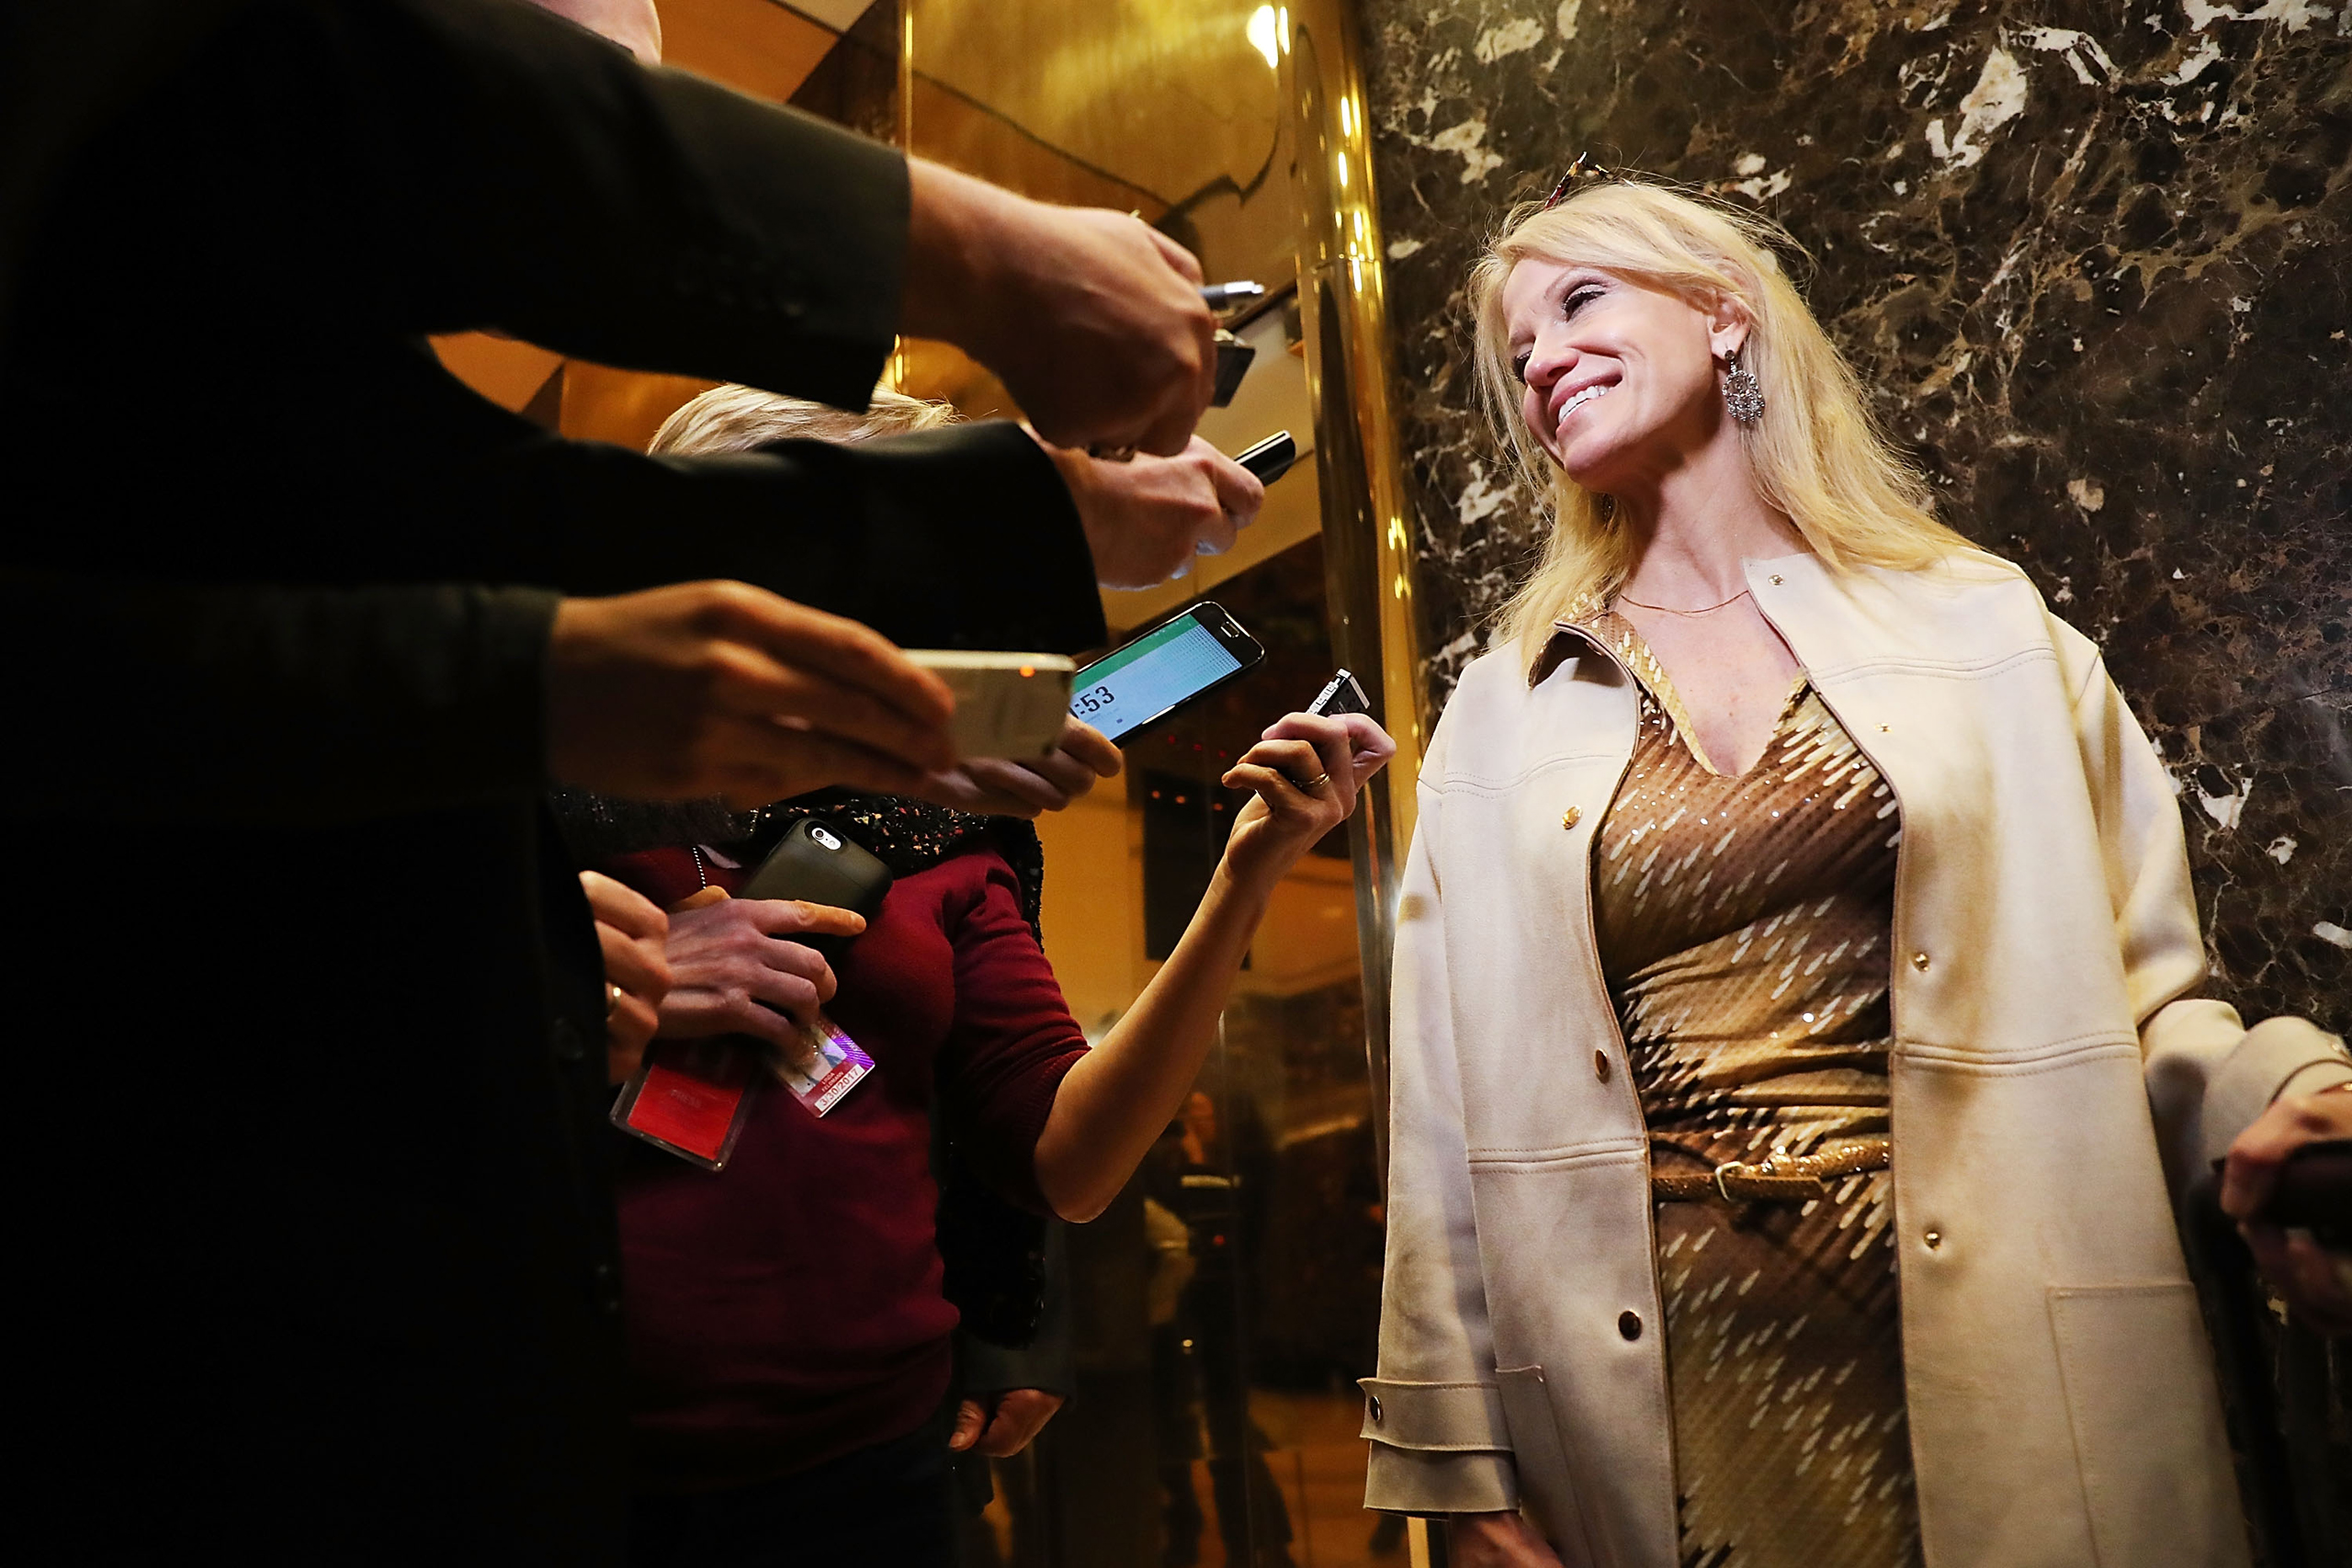 Donald Trump's campaign manager Kellyanne Conway speaks to the media while entering Trump Tower on Nov. 14, 2016.